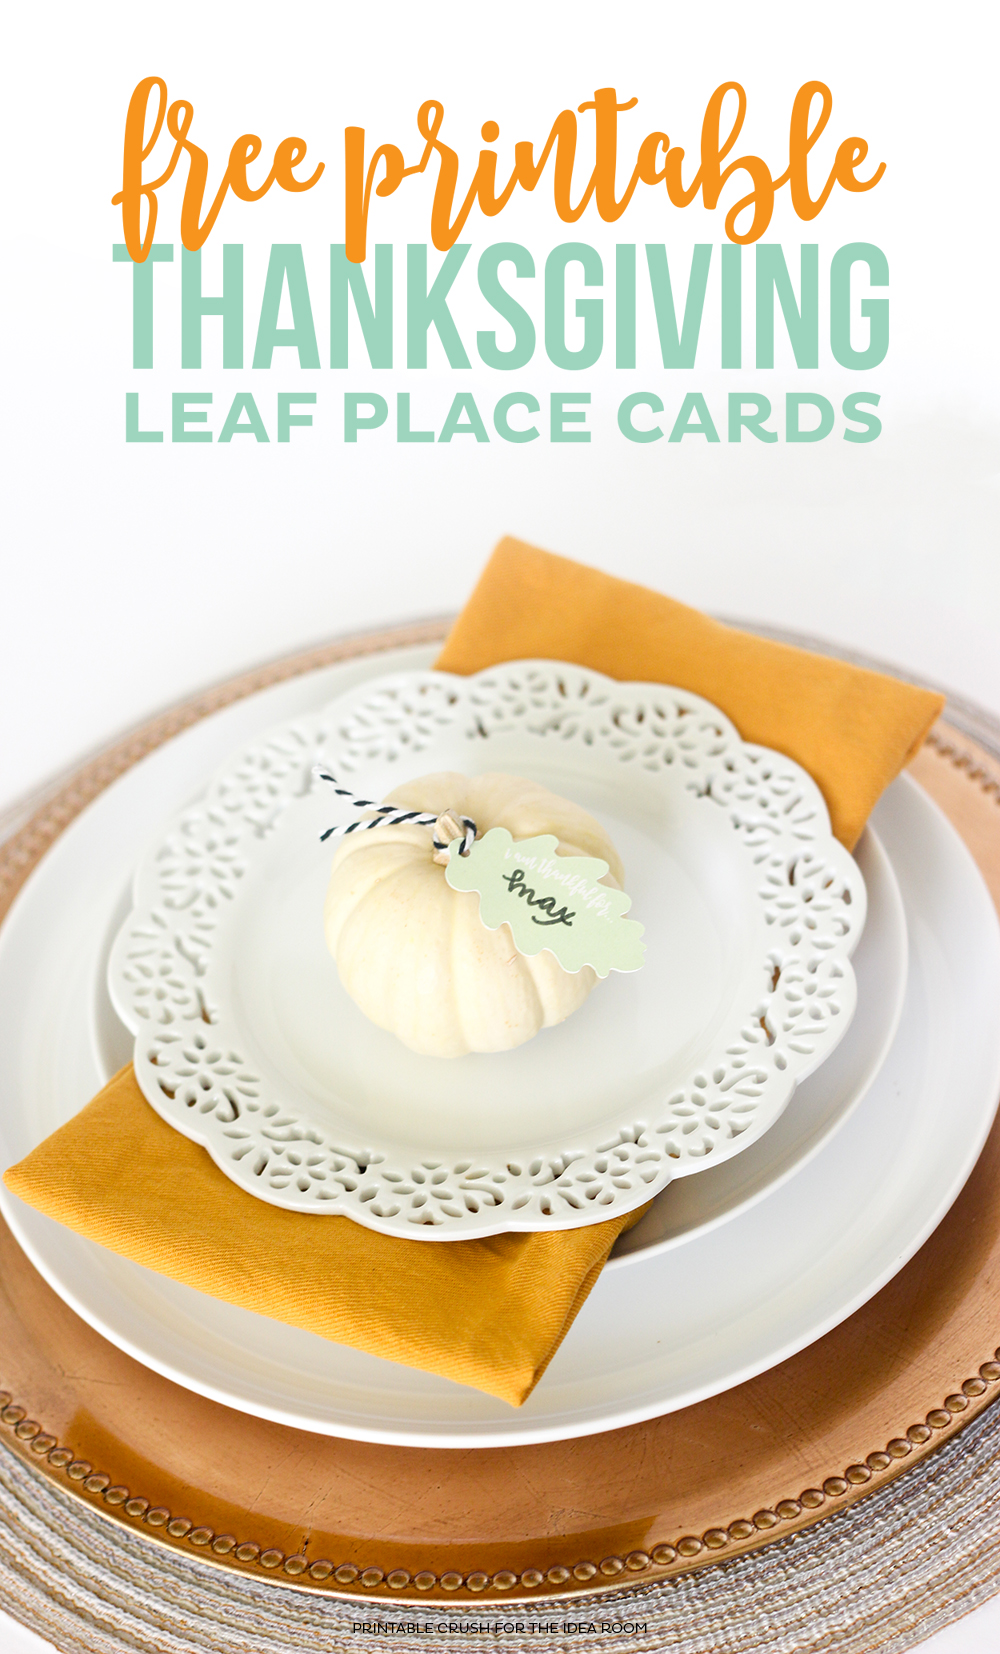 Download these pretty FREE Thanksgiving Place Card Printables to create a beautiful place setting for your guests!